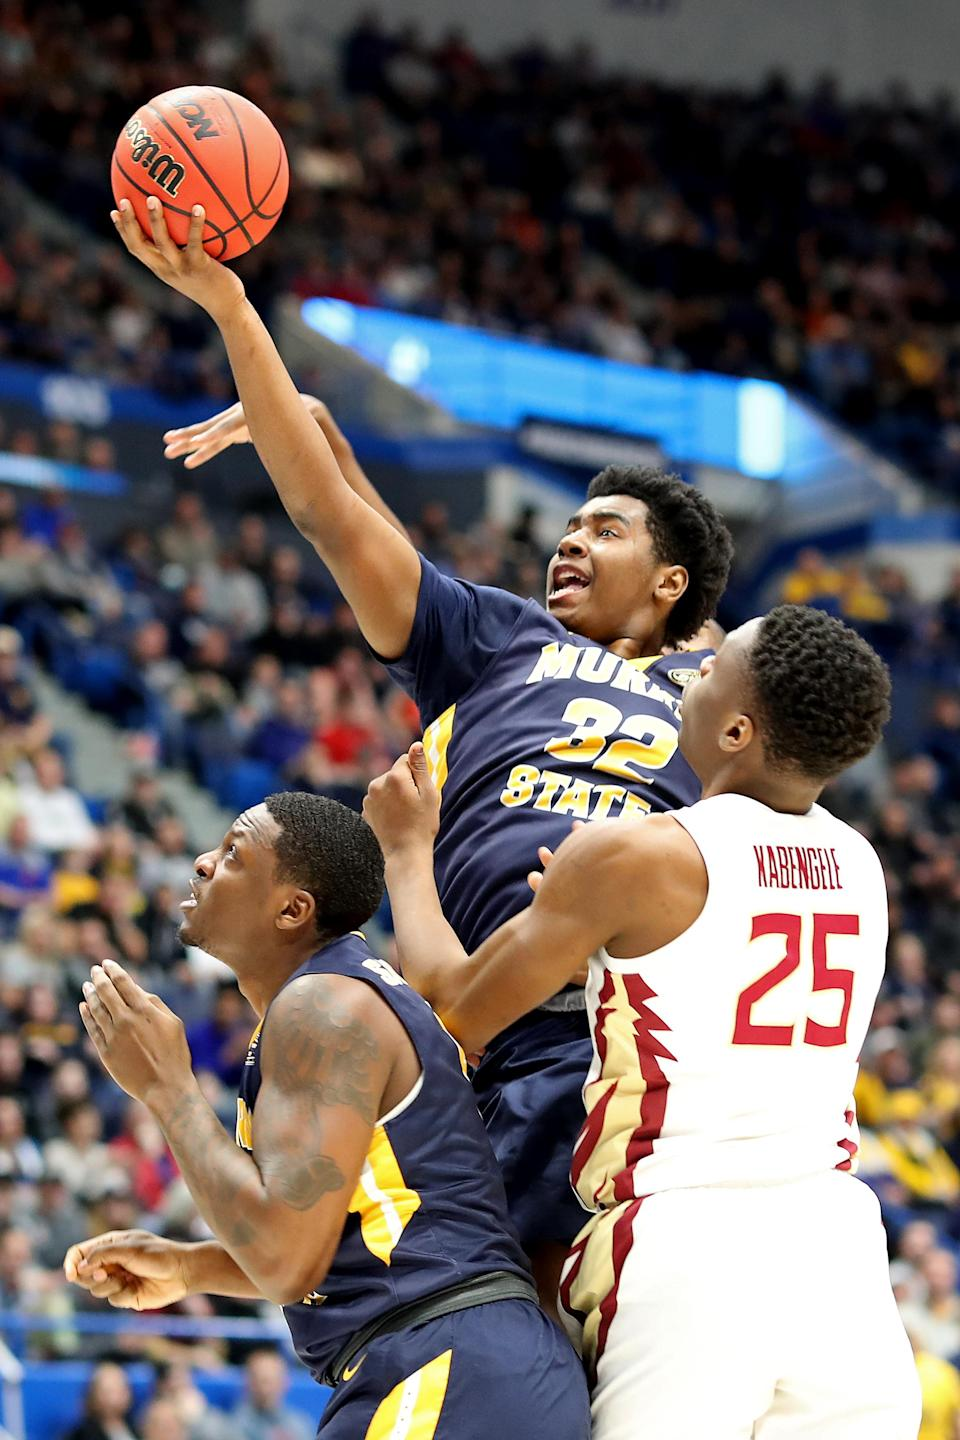 <p>Darnell Cowart #32 of the Murray State Racers attempts a shot against Mfiondu Kabengele #25 of the Florida State Seminoles in the first half during the second round of the 2019 NCAA Men's Basketball Tournament at XL Center on March 23, 2019 in Hartford, Connecticut. (Photo by Rob Carr/Getty Images) </p>